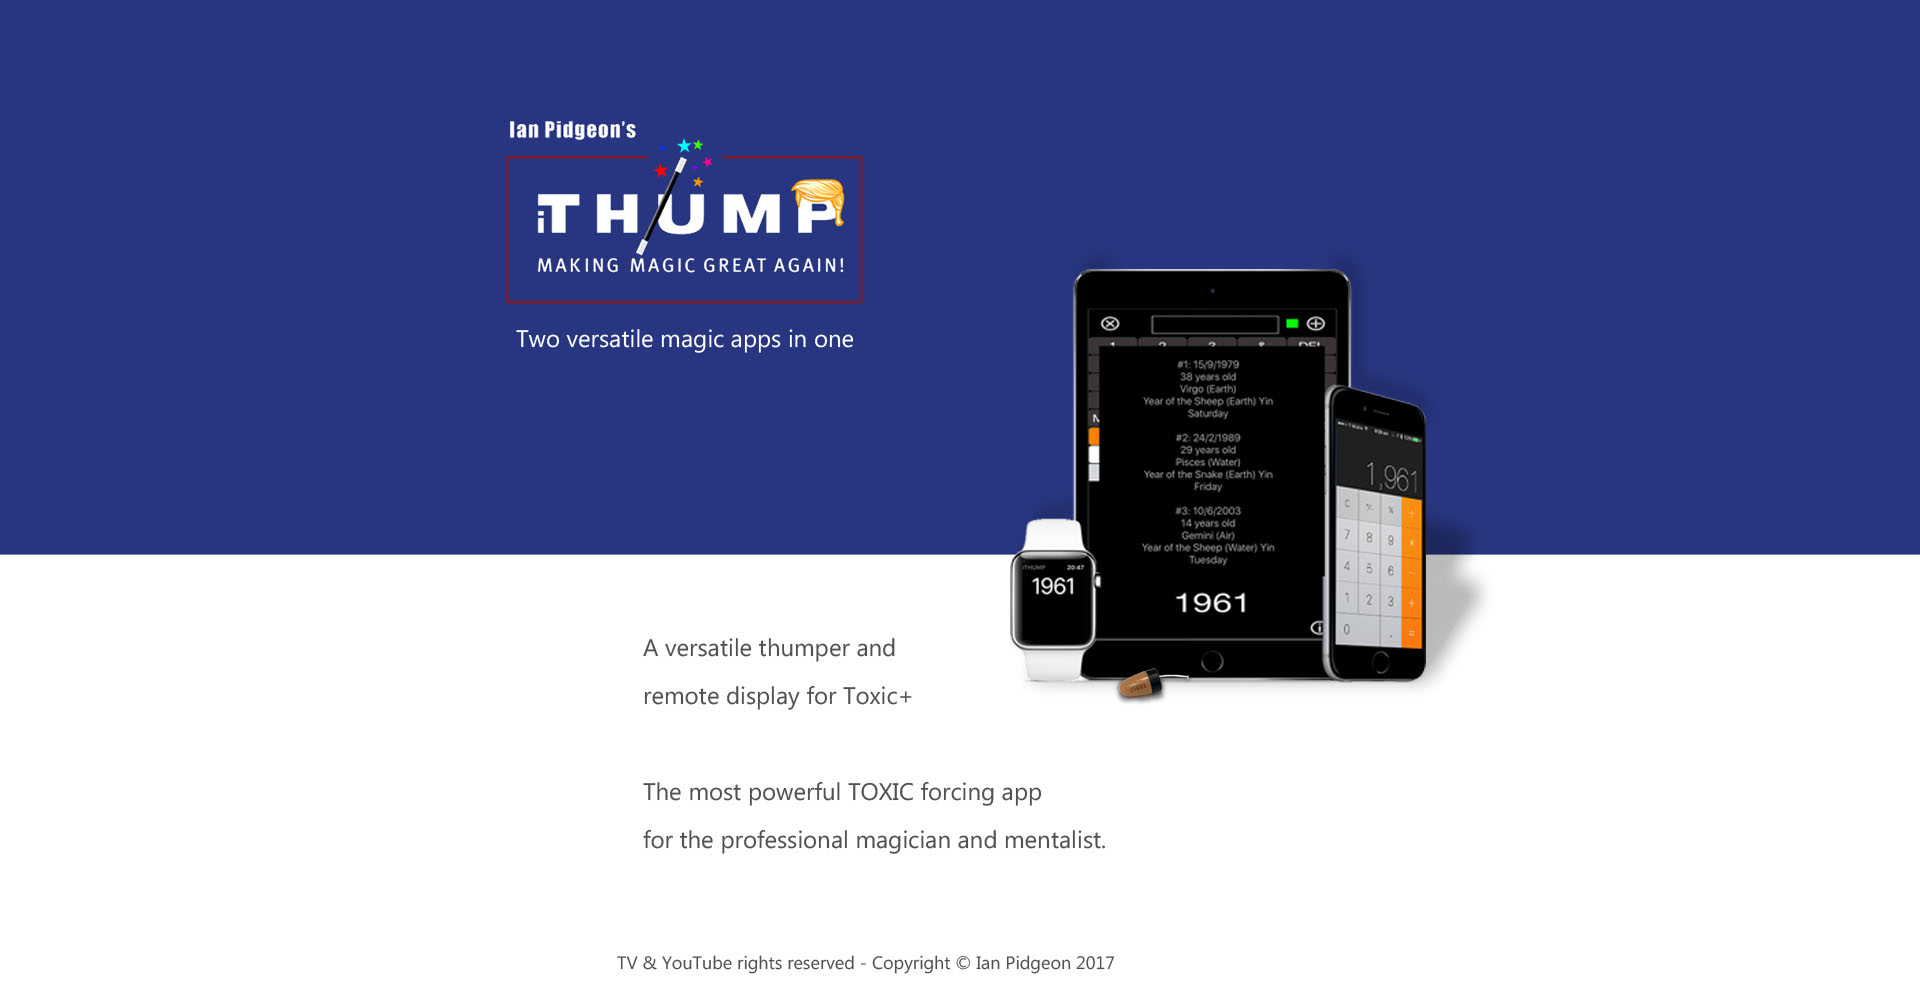 The iThump/Toxic+ Magic App for iOS